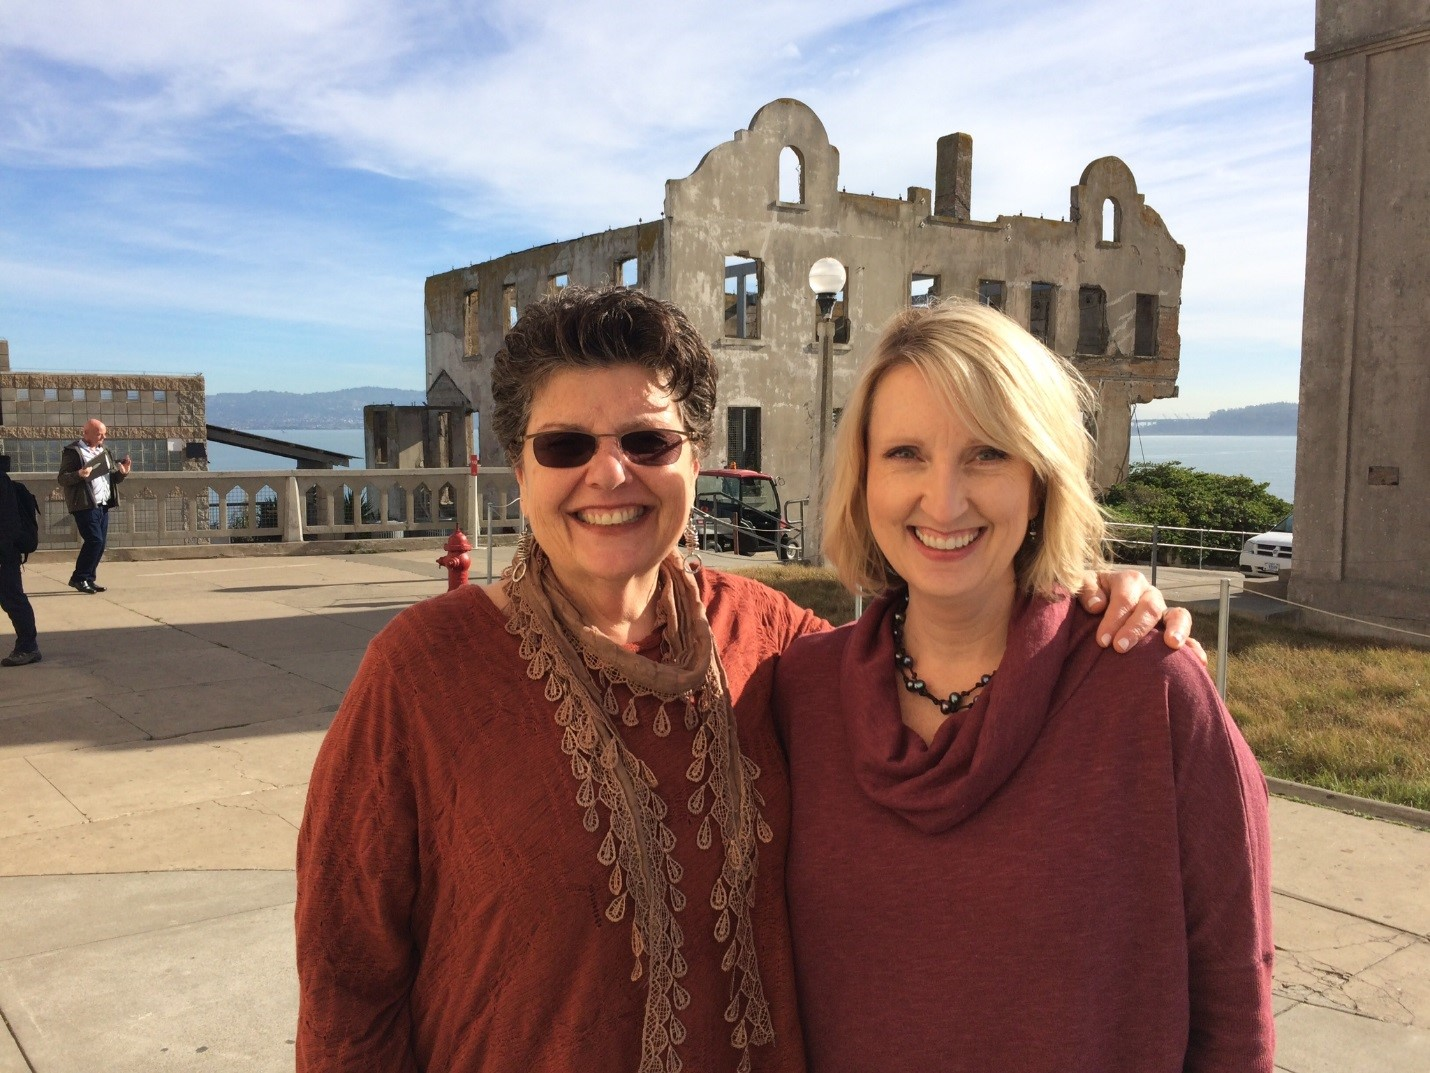 Dr. Joan Beasley (Director, Center for START Services) and Dr. Karen Weigle (Associate Director, Center for START Services) see the sights in San Francisco while attending the NADD Conference